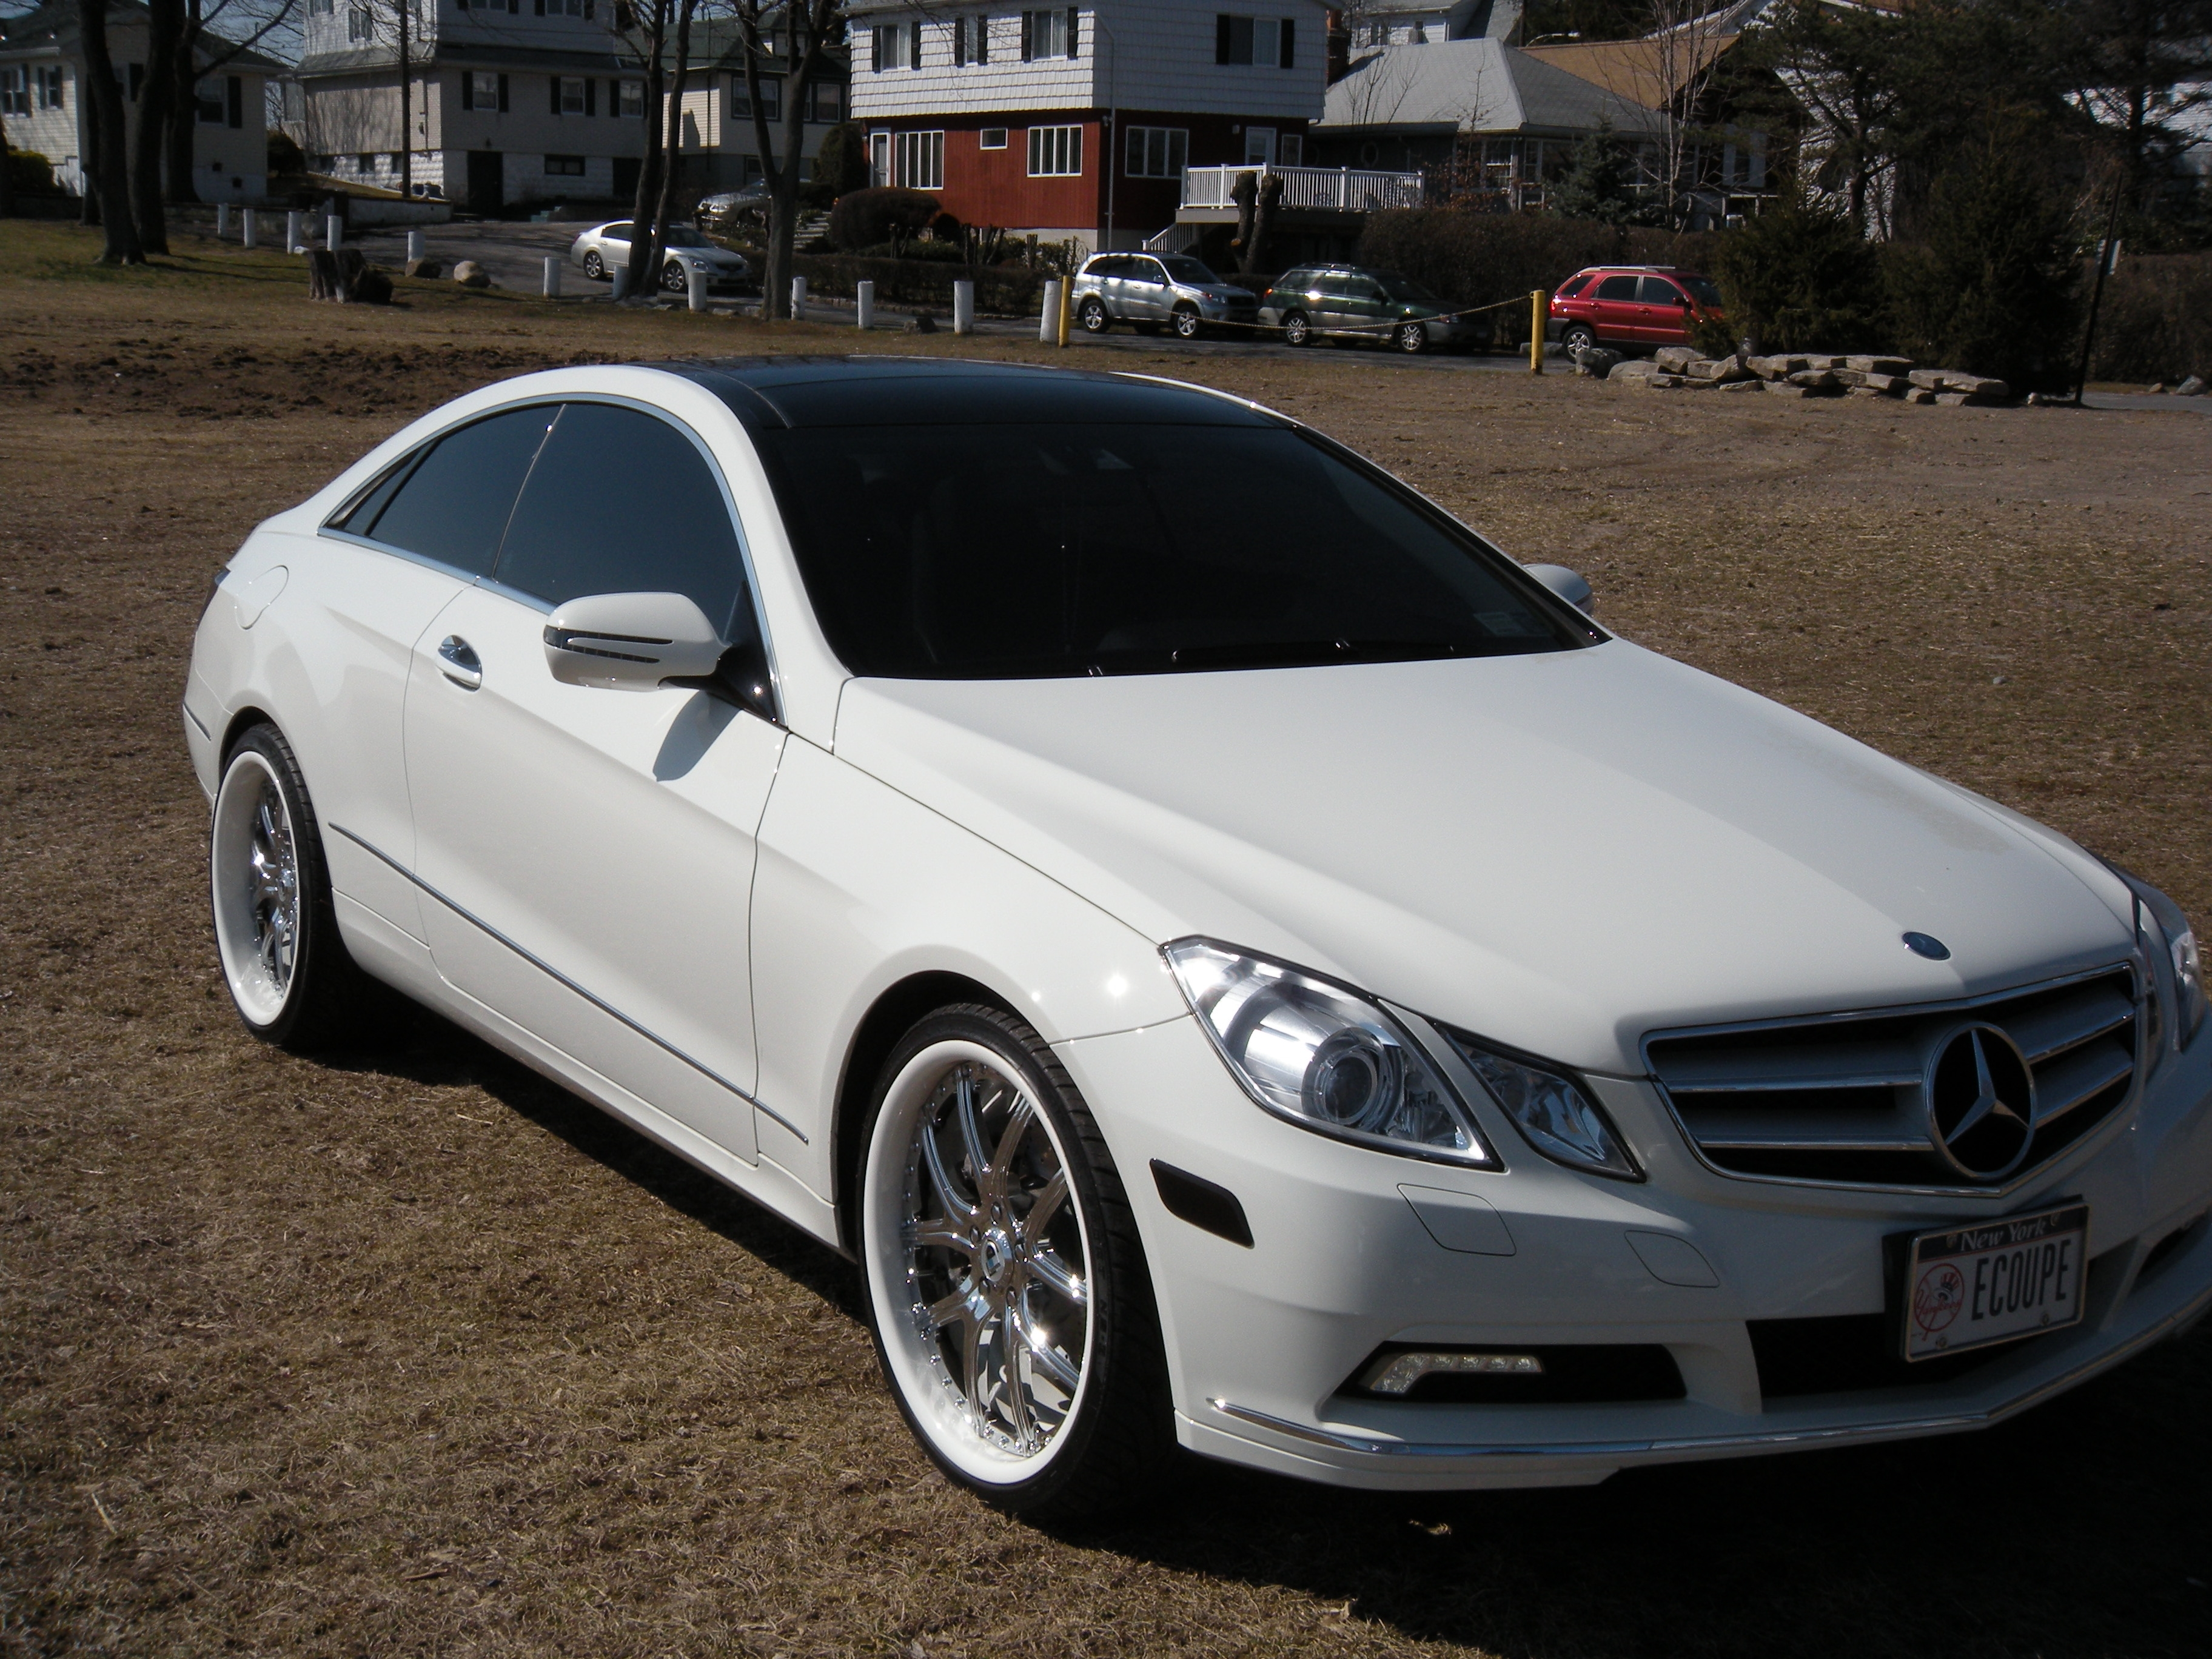 YoUnG_MoNeY_BX 2010 Mercedes-Benz E-Class 13358736